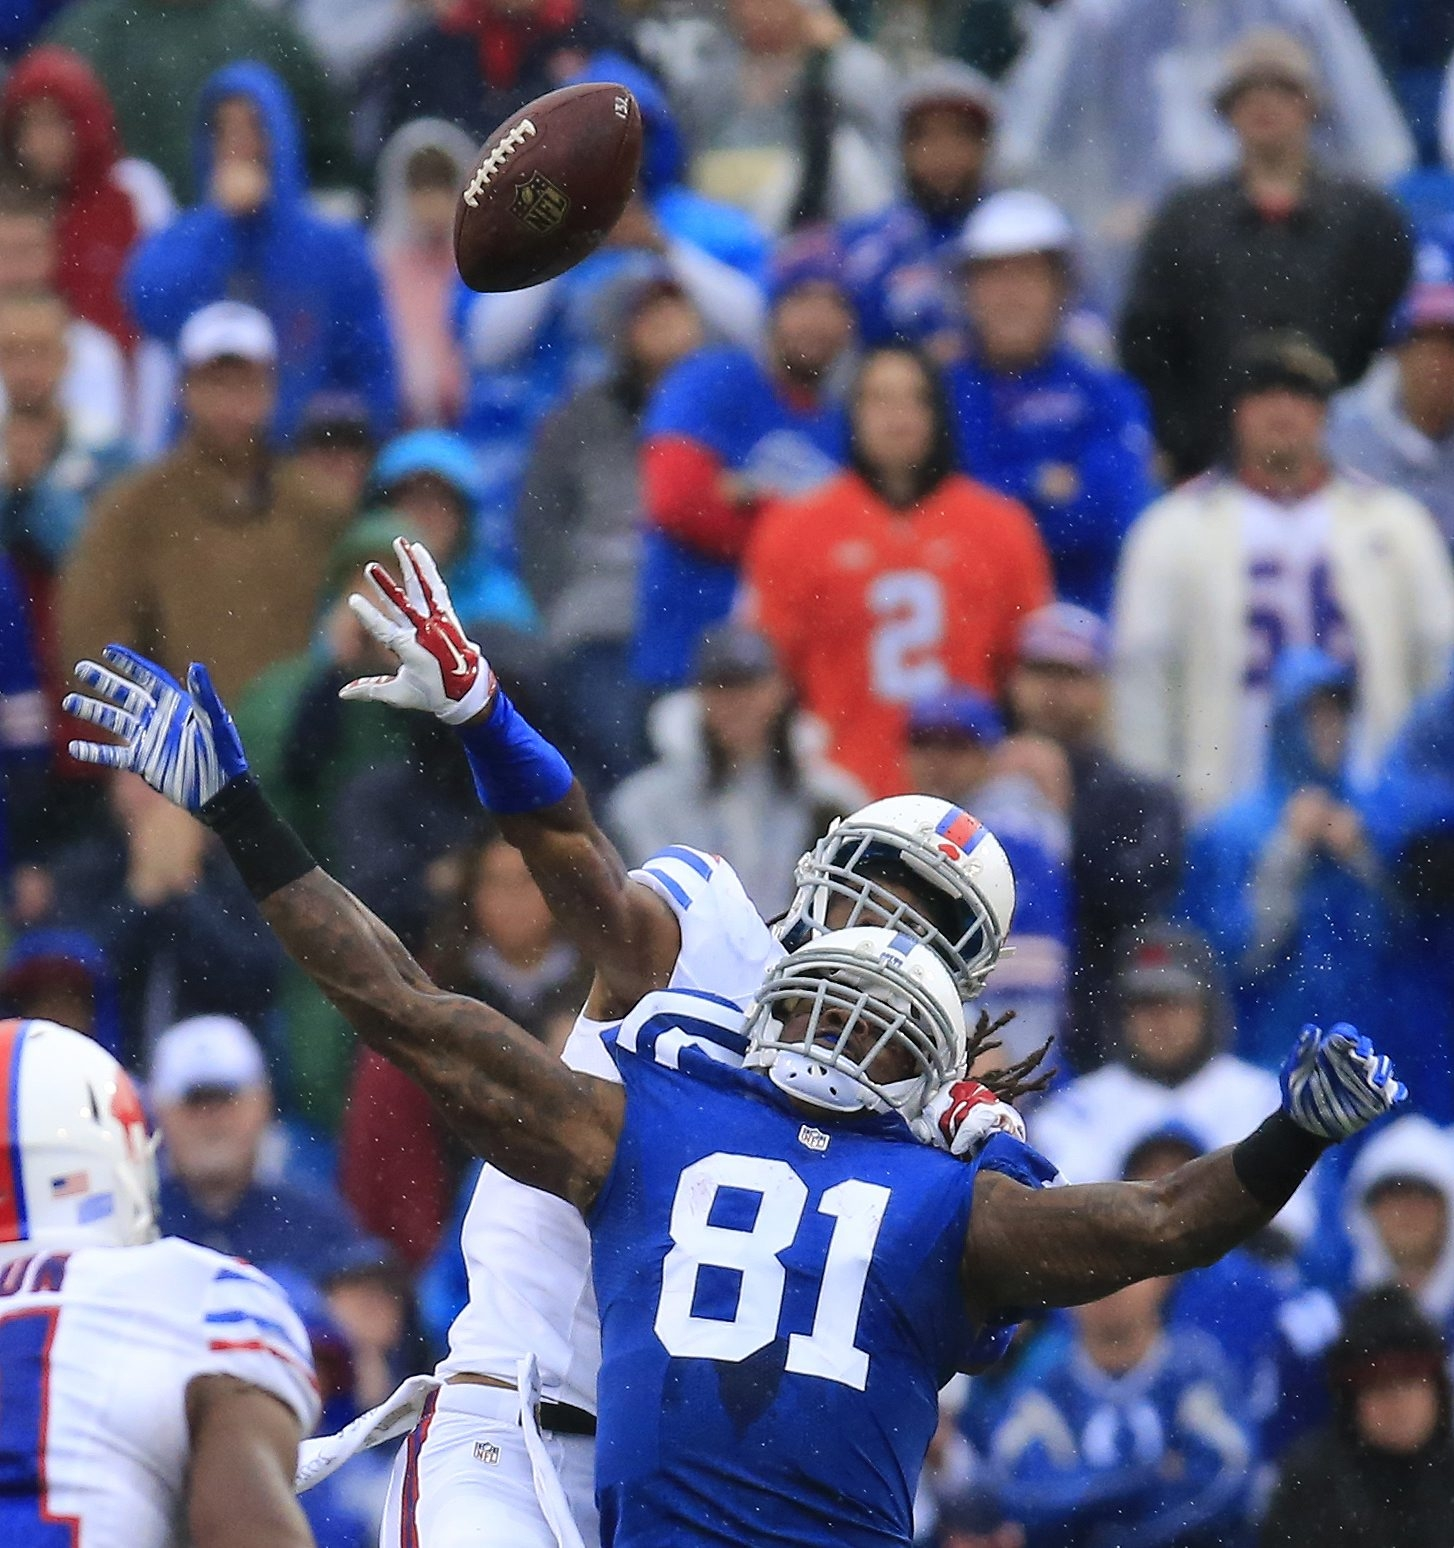 Buffalo Bills Mario Butler tips a pass intended for Indianapolis Colts Andre Johnson during the fourth quarter at Ralph Wilson Stadium on Sunday, Sept. 13, 2015.  (Harry Scull Jr./Buffalo News)